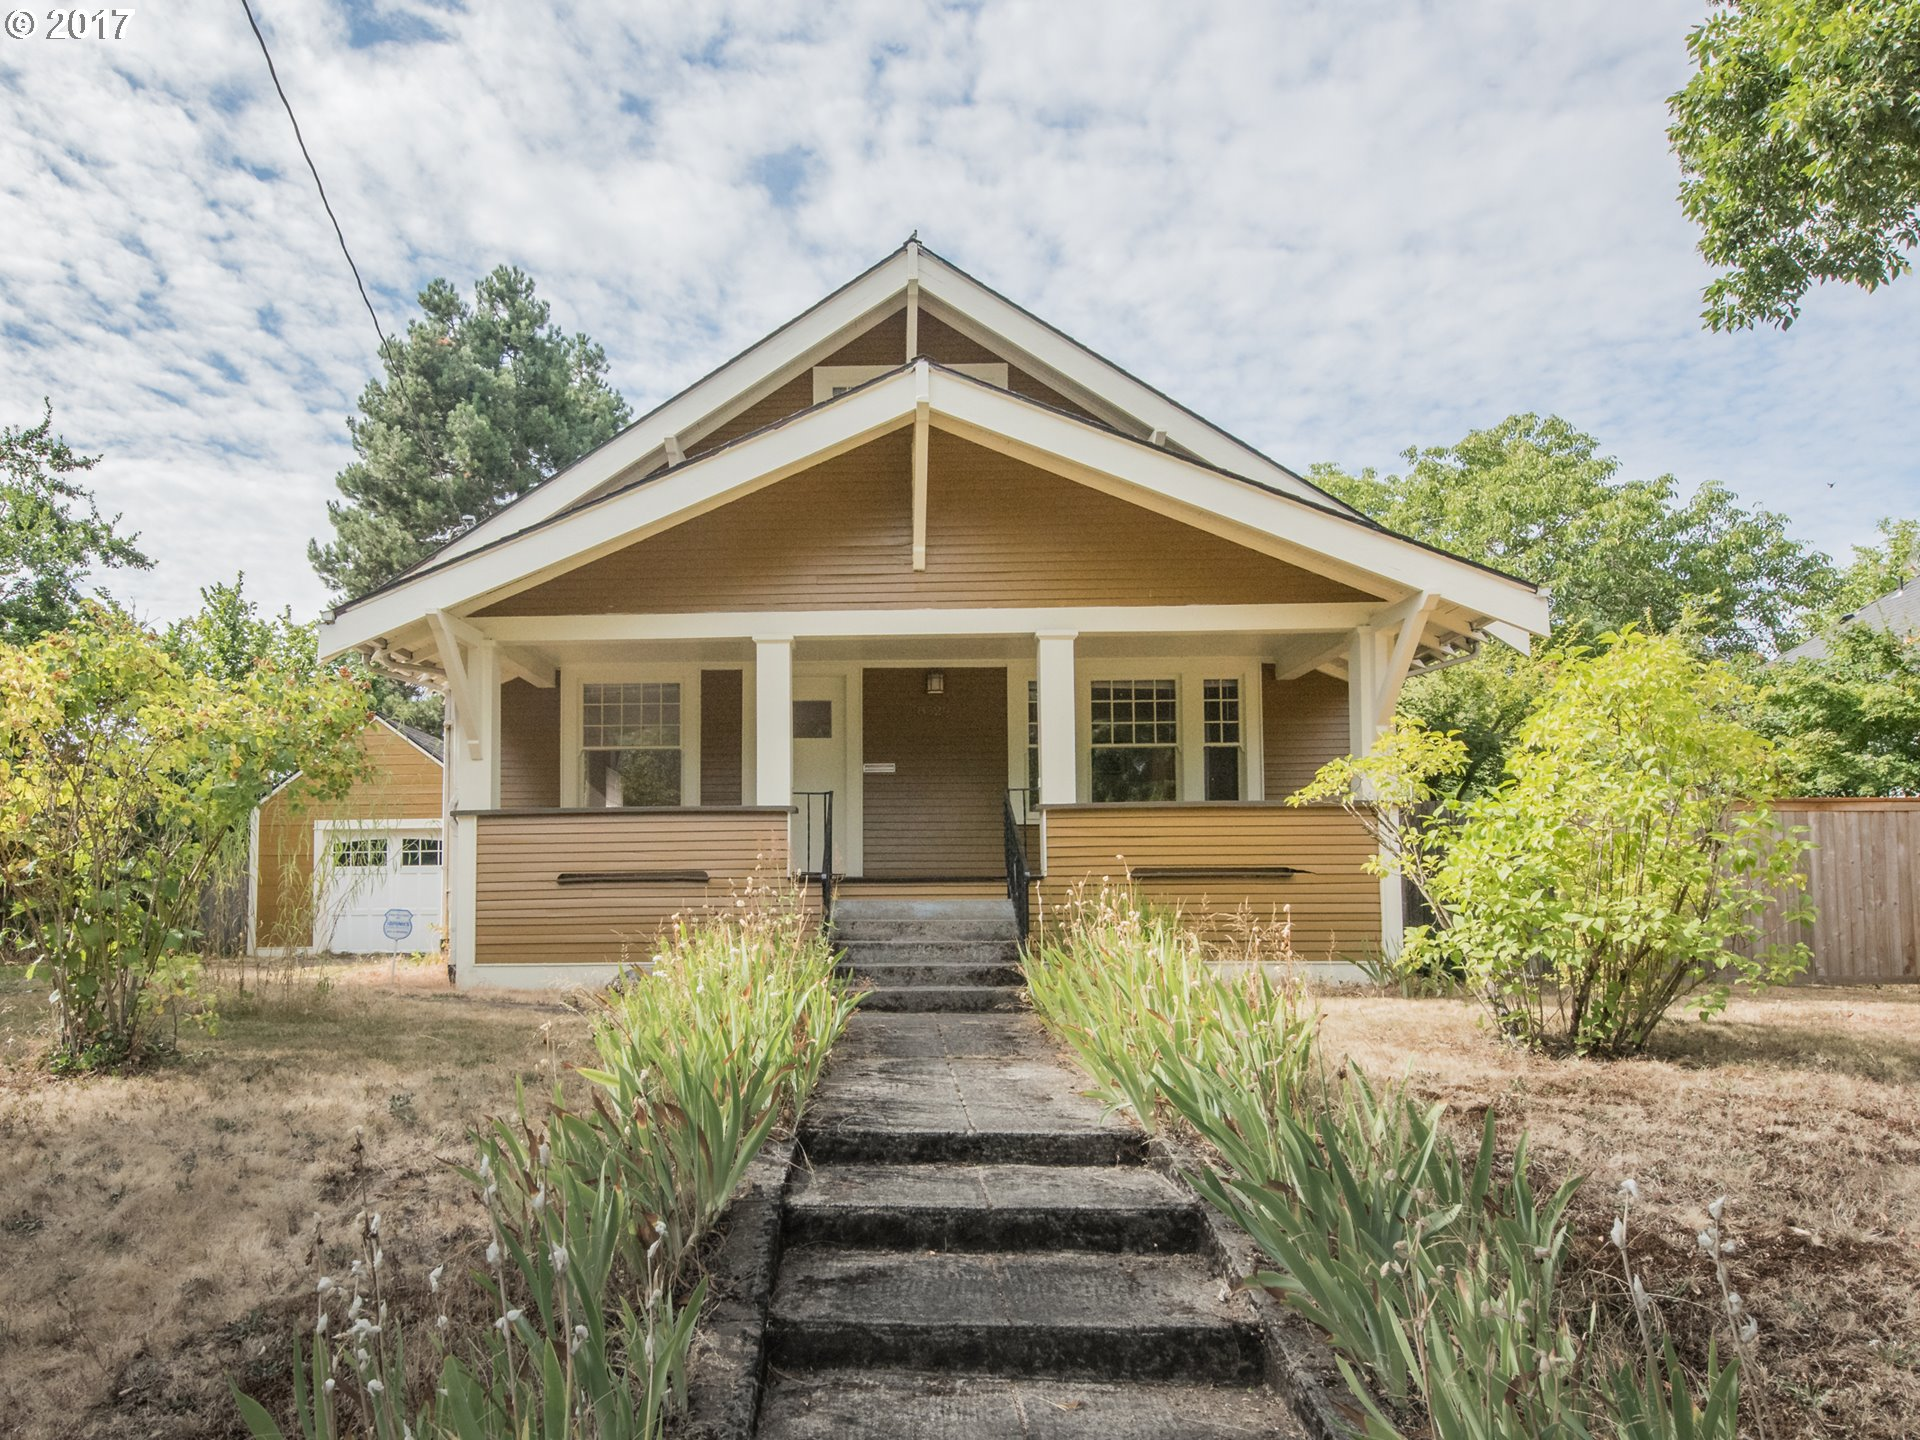 8529 N TRUMBULL AVE, Portland, OR 97203